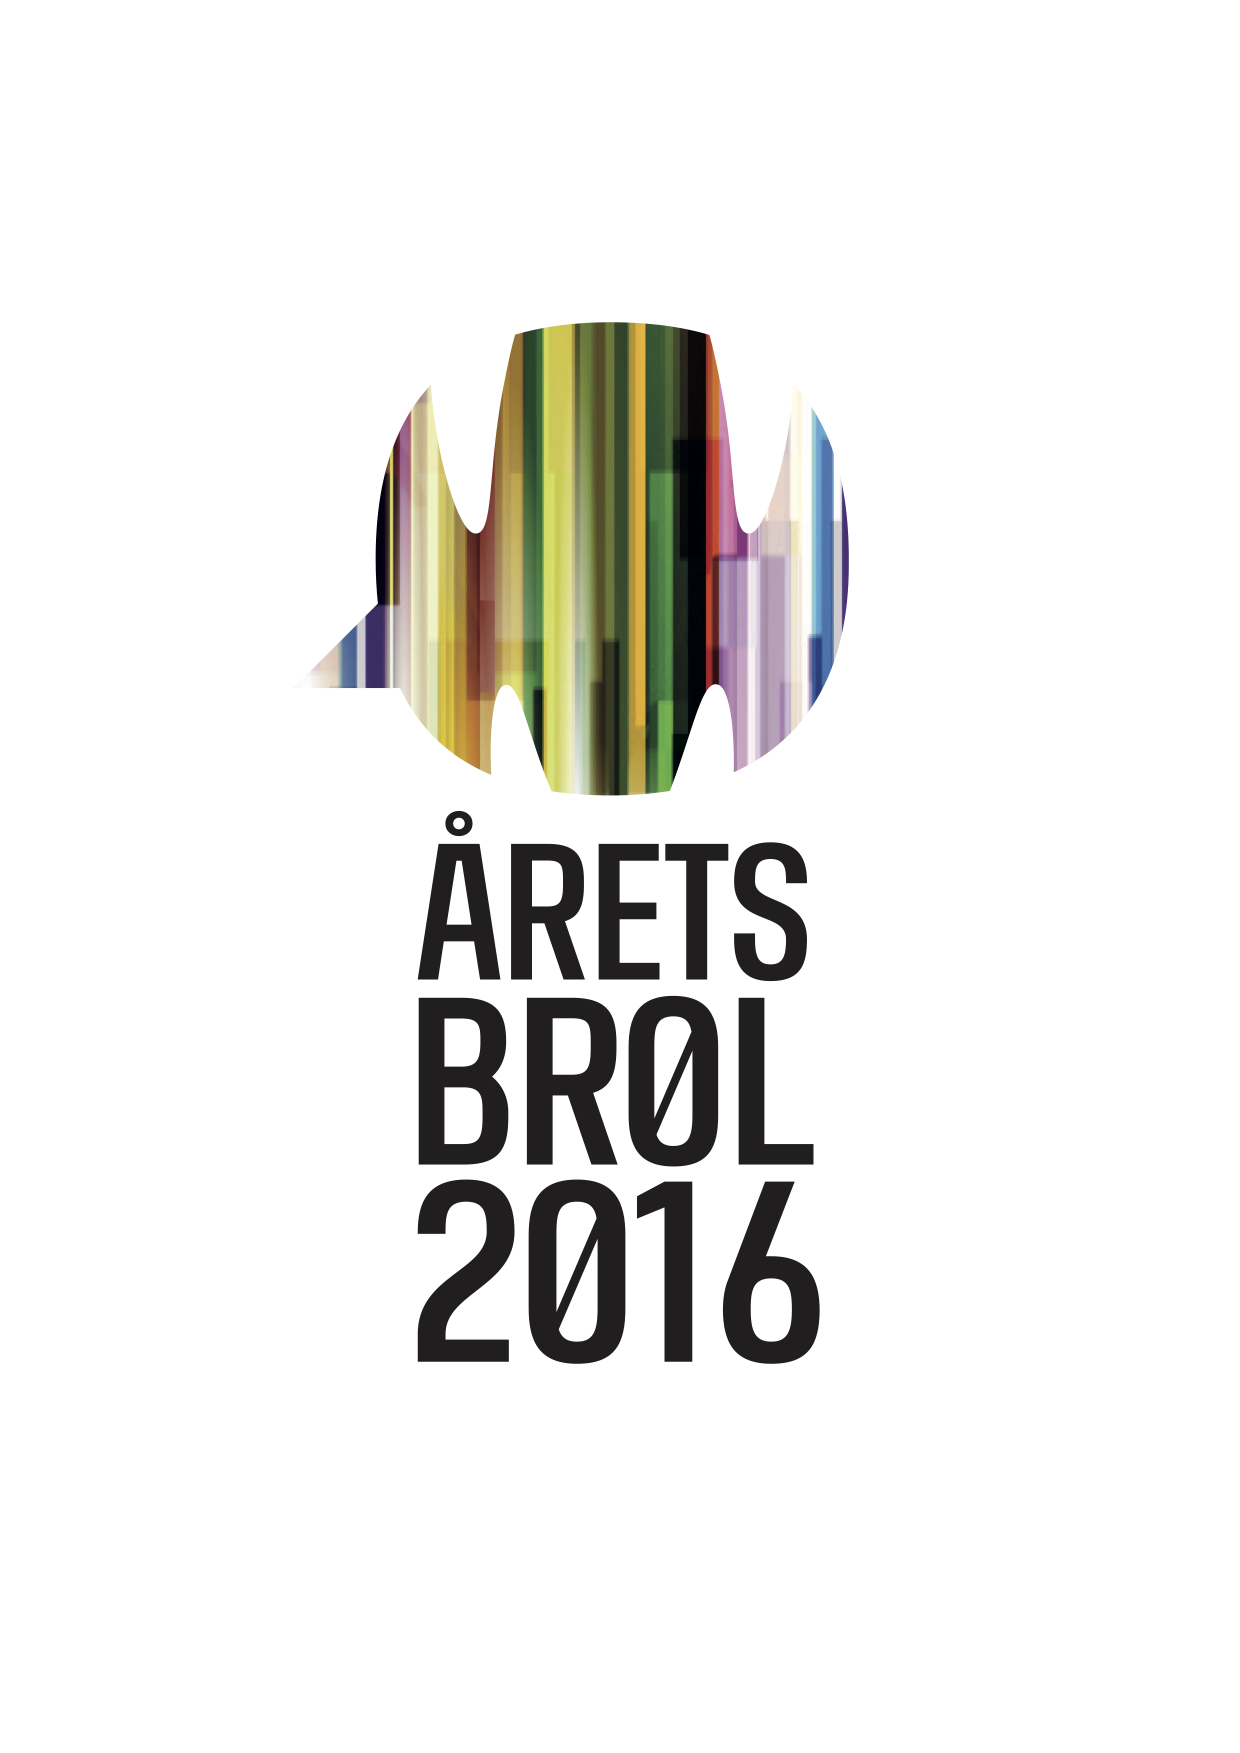 Three ÅRETS BRØL shortlists for Ægir Brewery